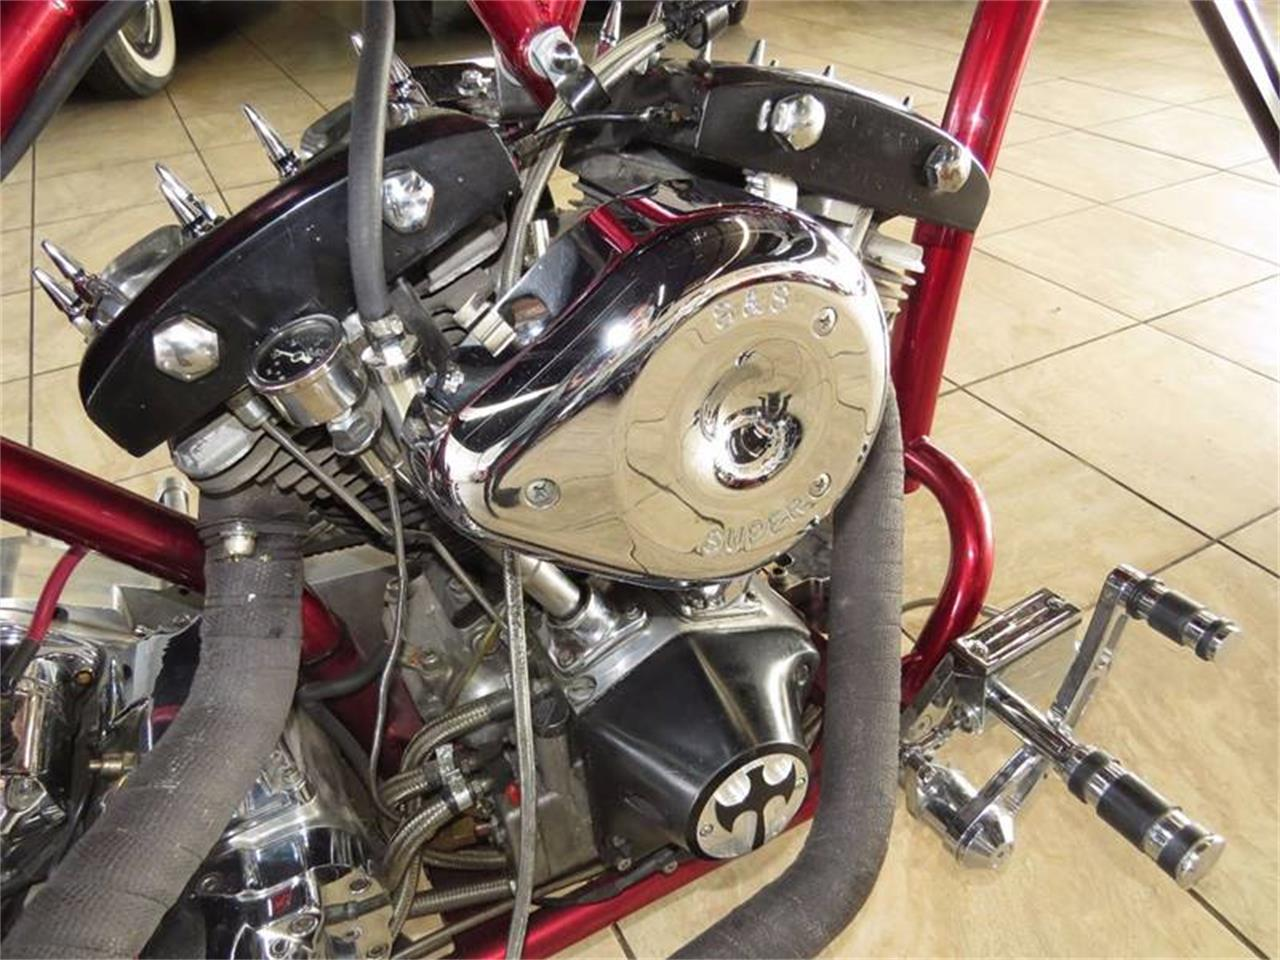 2012 Harley-Davidson Motorcycle for sale in St. Charles, IL – photo 13